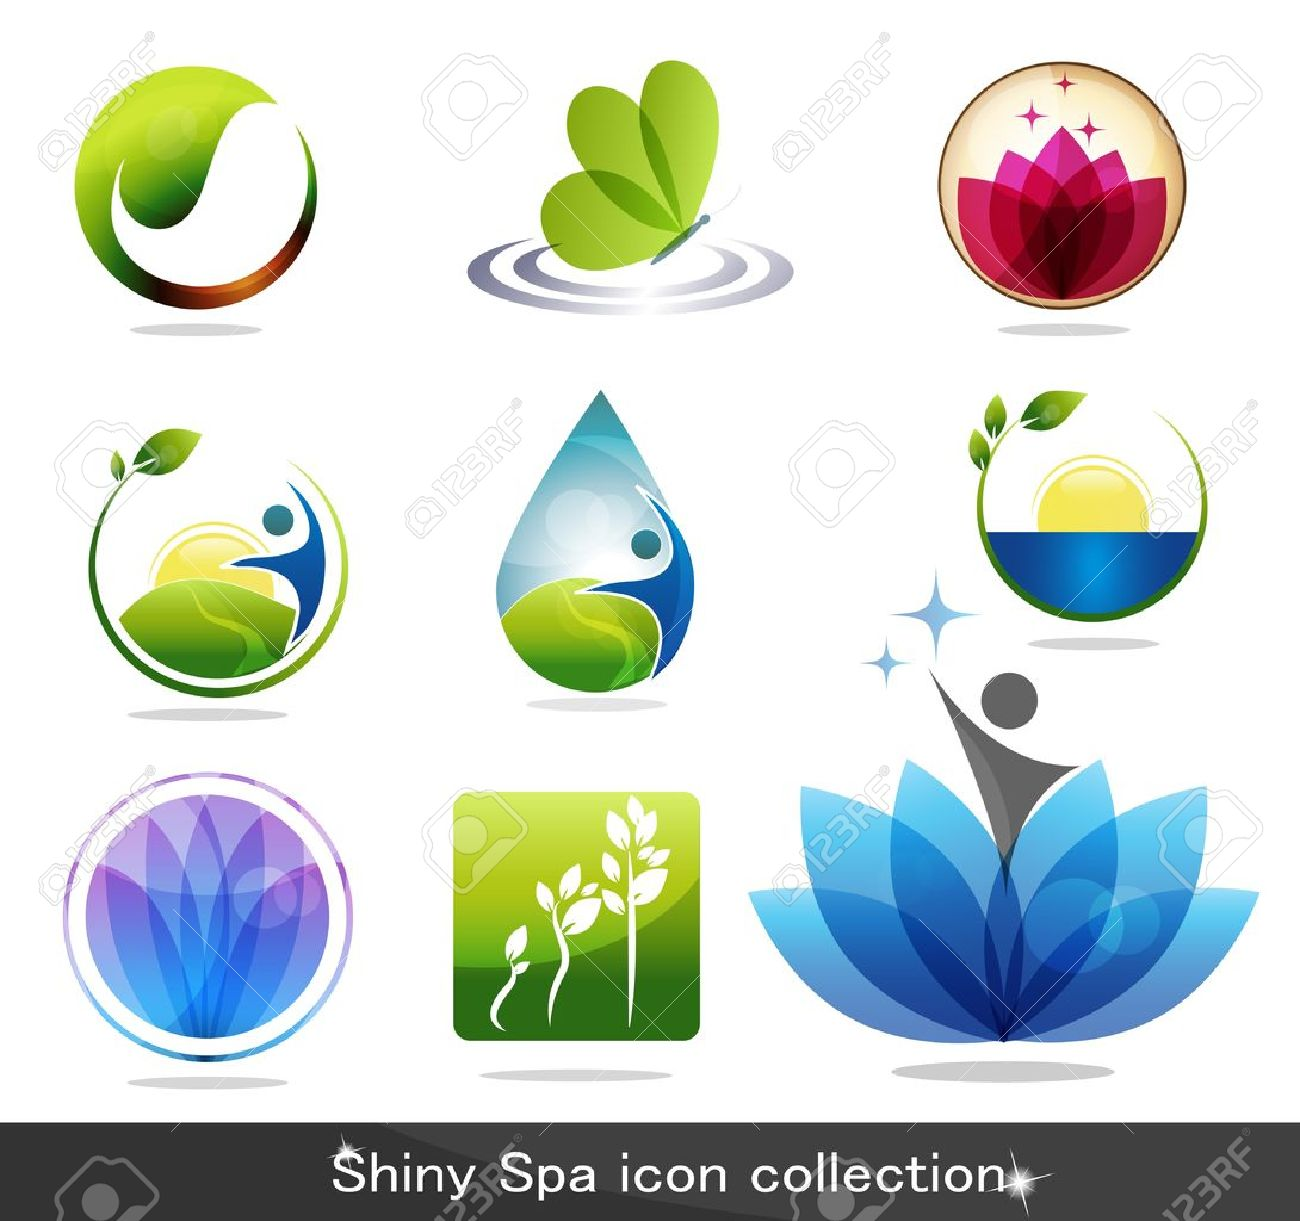 Beautiful spa icon collection, butterfly, flowers, foliage, drop and plant. Beautiful harmonic colors, can be used as company logo. Stock Vector - 11379752